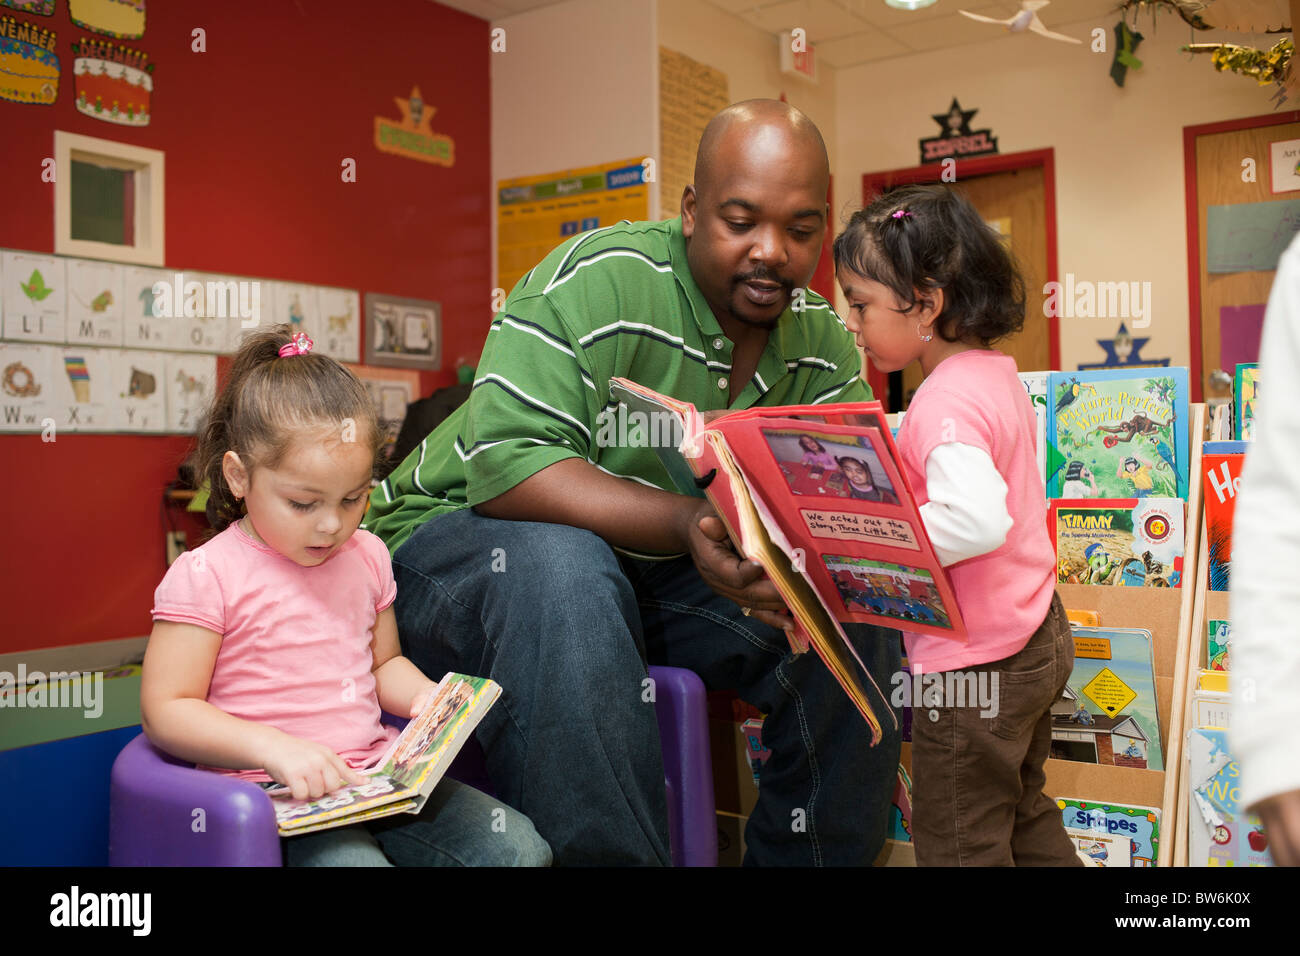 Male African American Preschool Teacher Helping A Girl